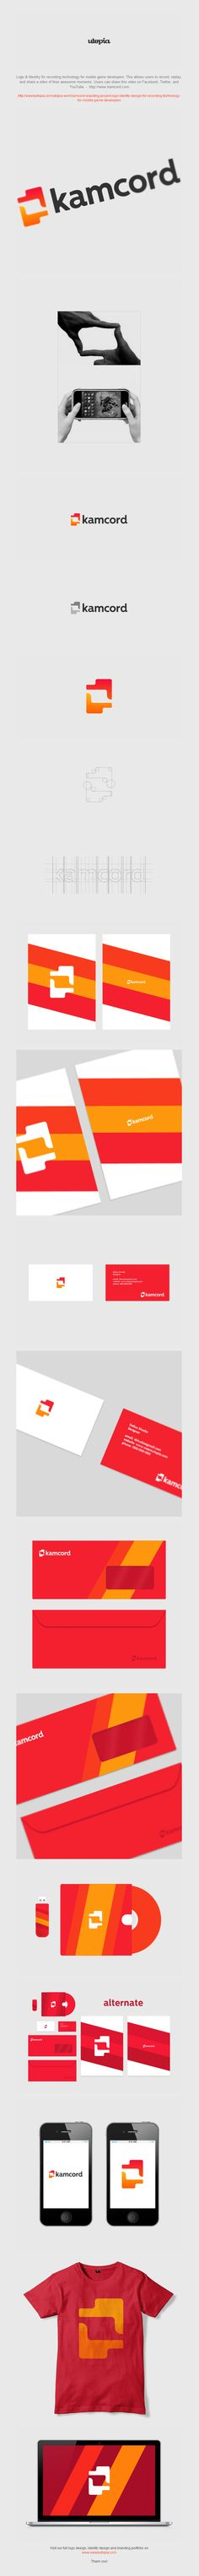 Kamcord logo and corporate identity design by Utopia Branding Agency » Design You Trust – Design Blog and Community